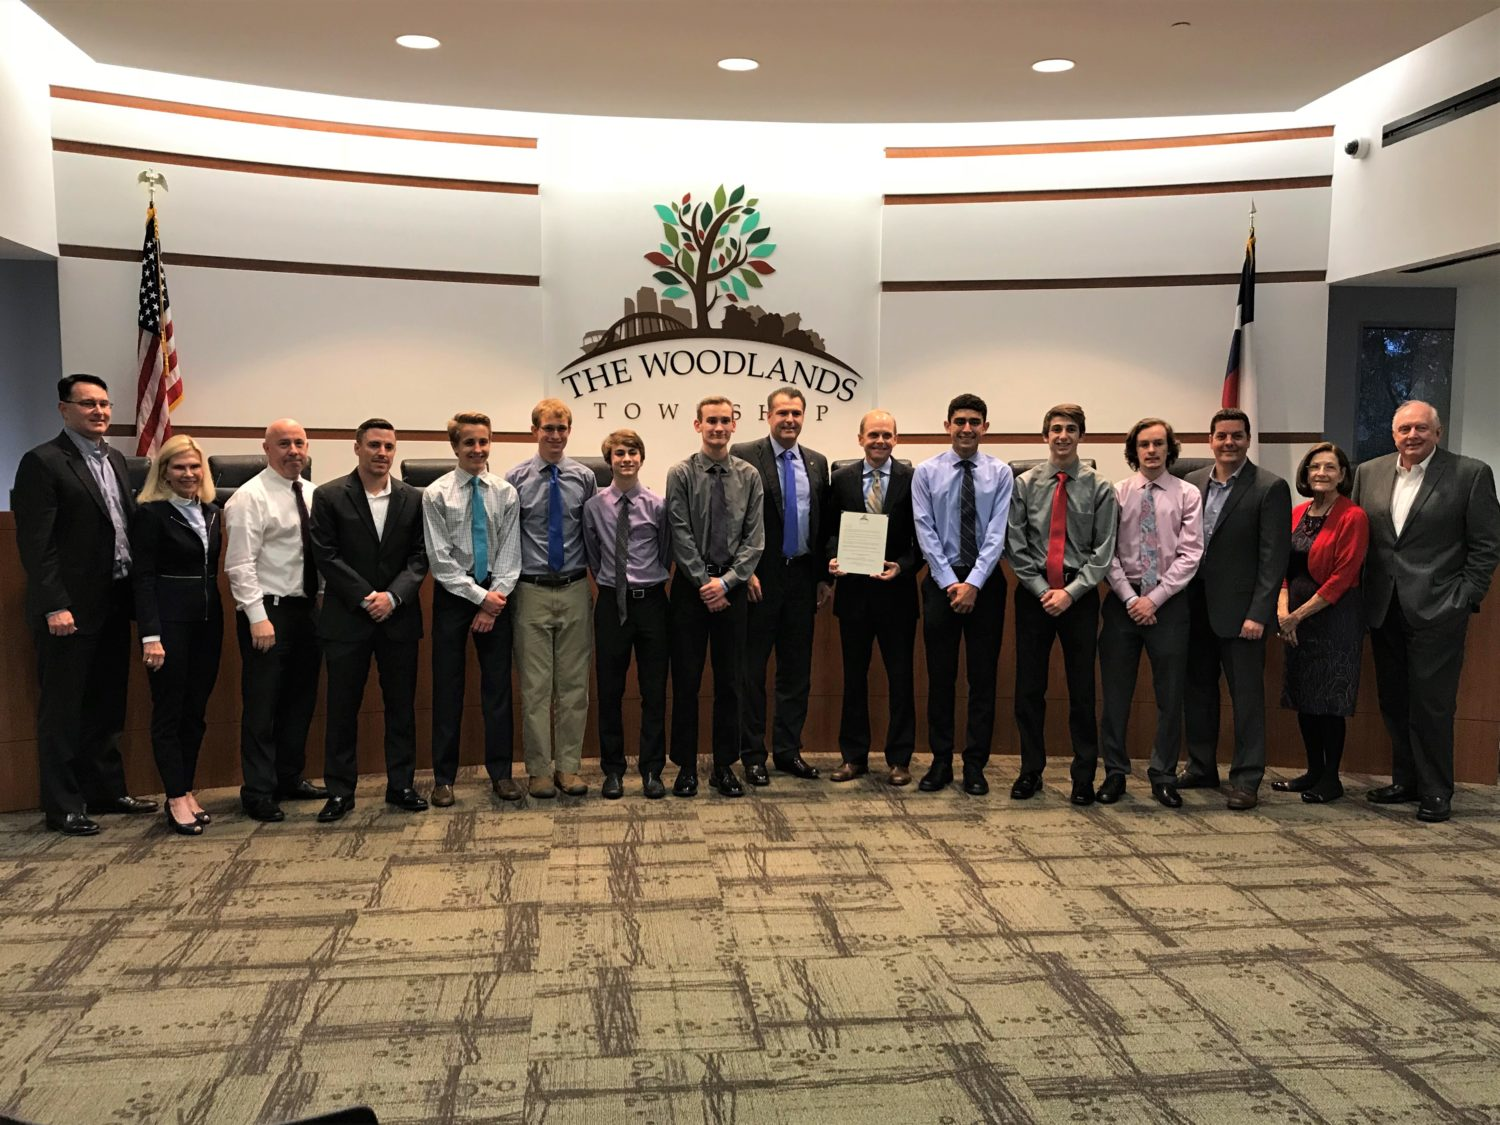 the boys cross country team poses for a picture after winning their third consecutive state championship